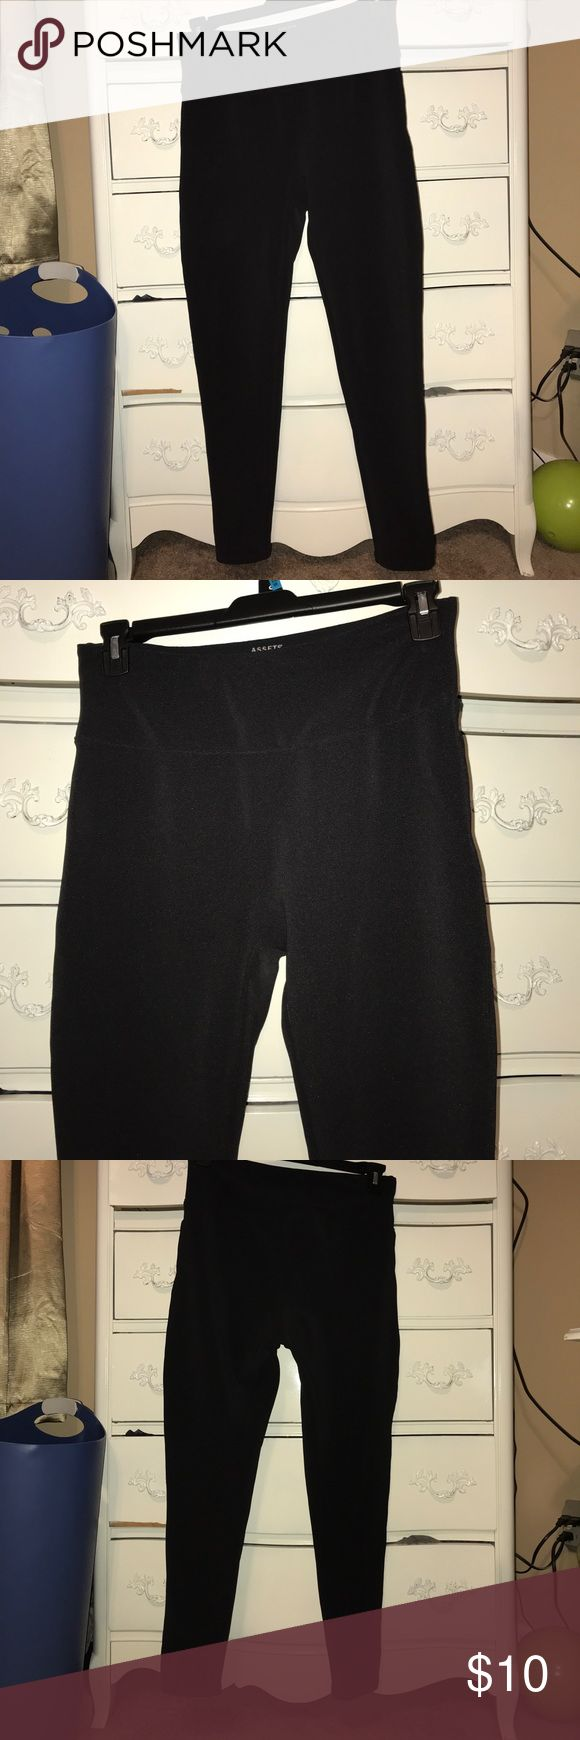 black leggings worn twice. like brand new. prefect condition. heavy duty spanx material. Assets By Spanx Other